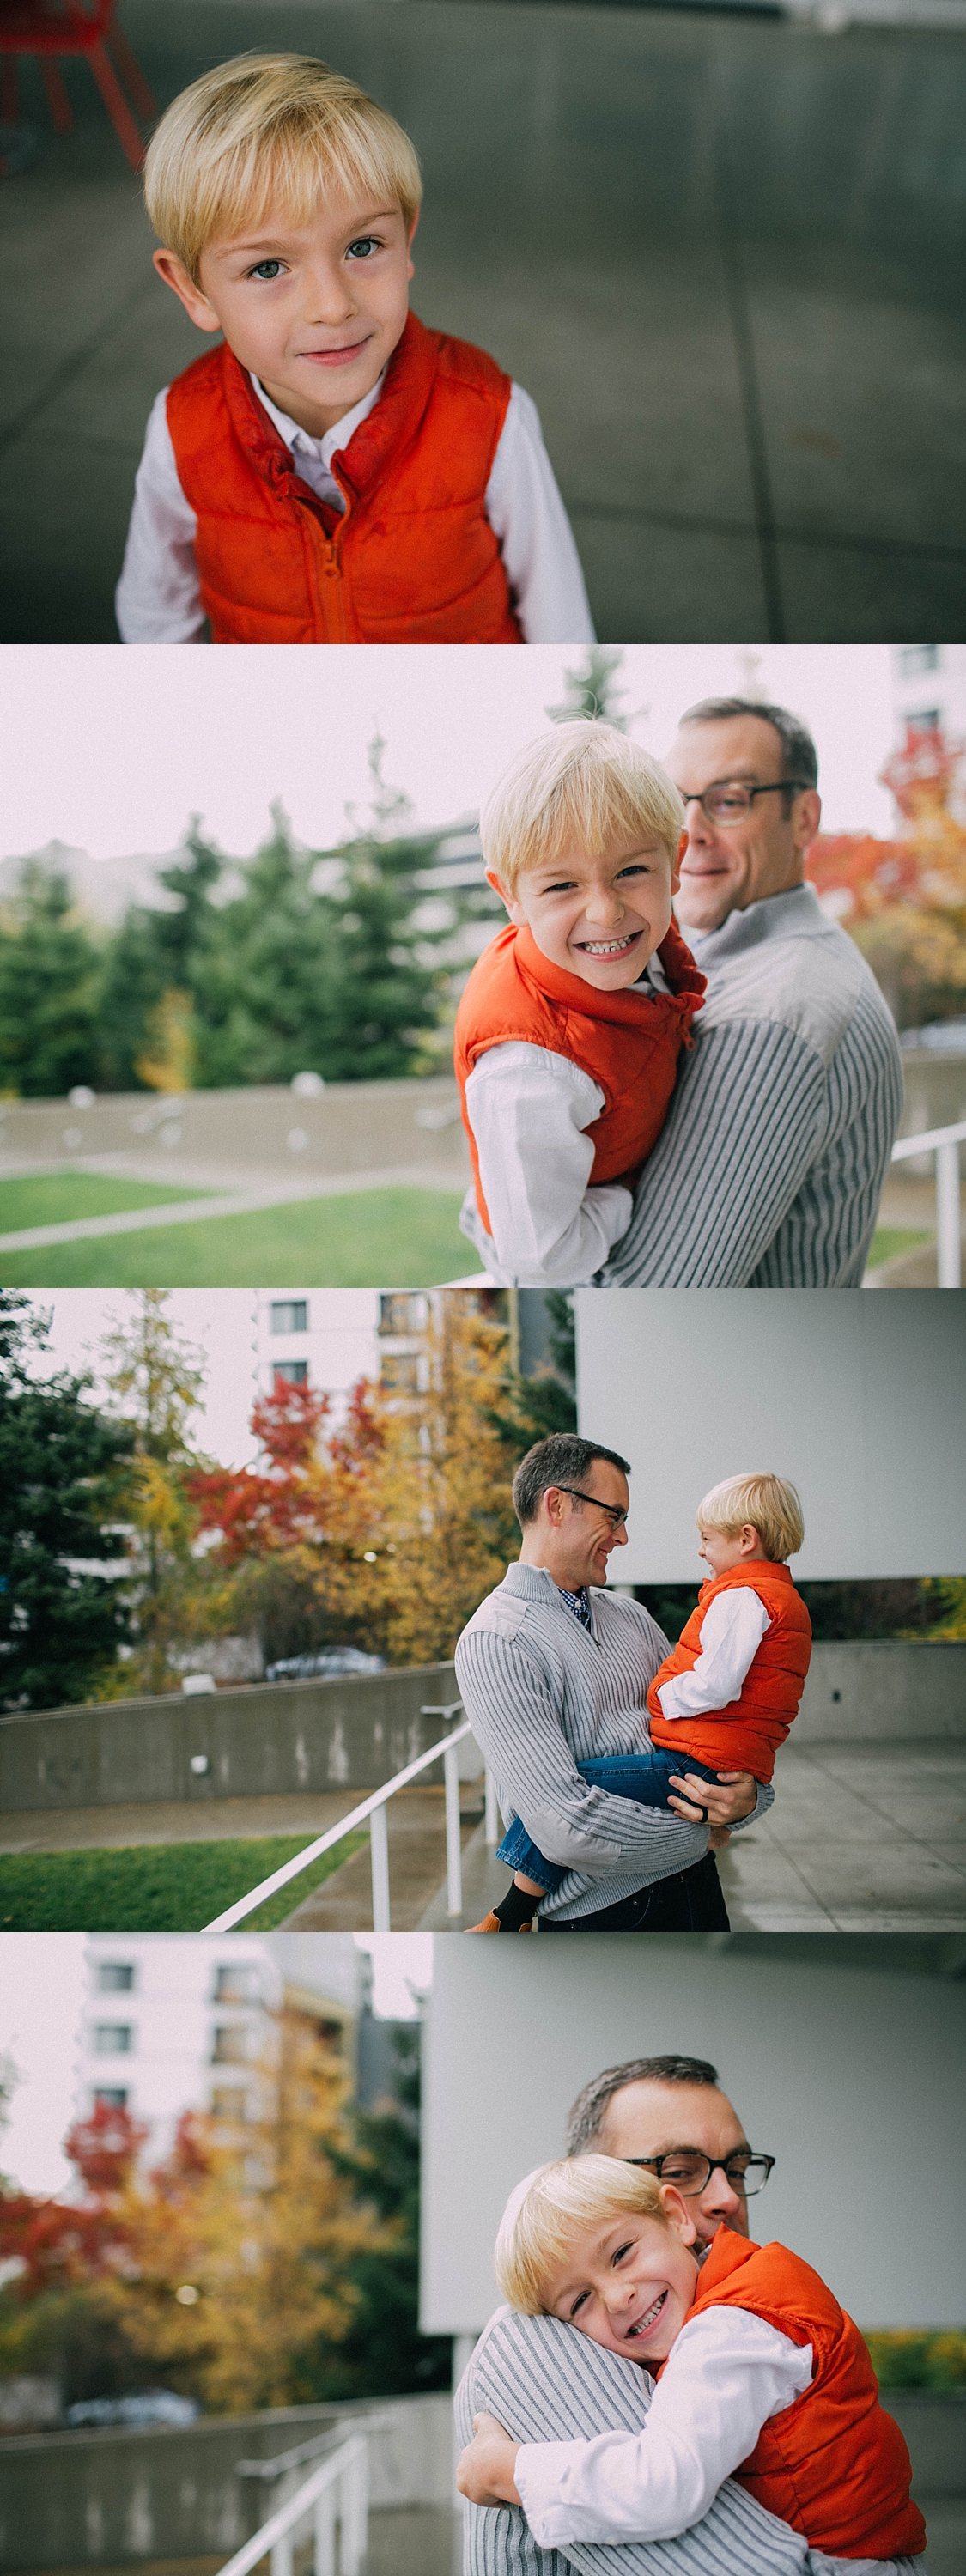 seattle lifestyle family session olympic sculpture park-1.jpg